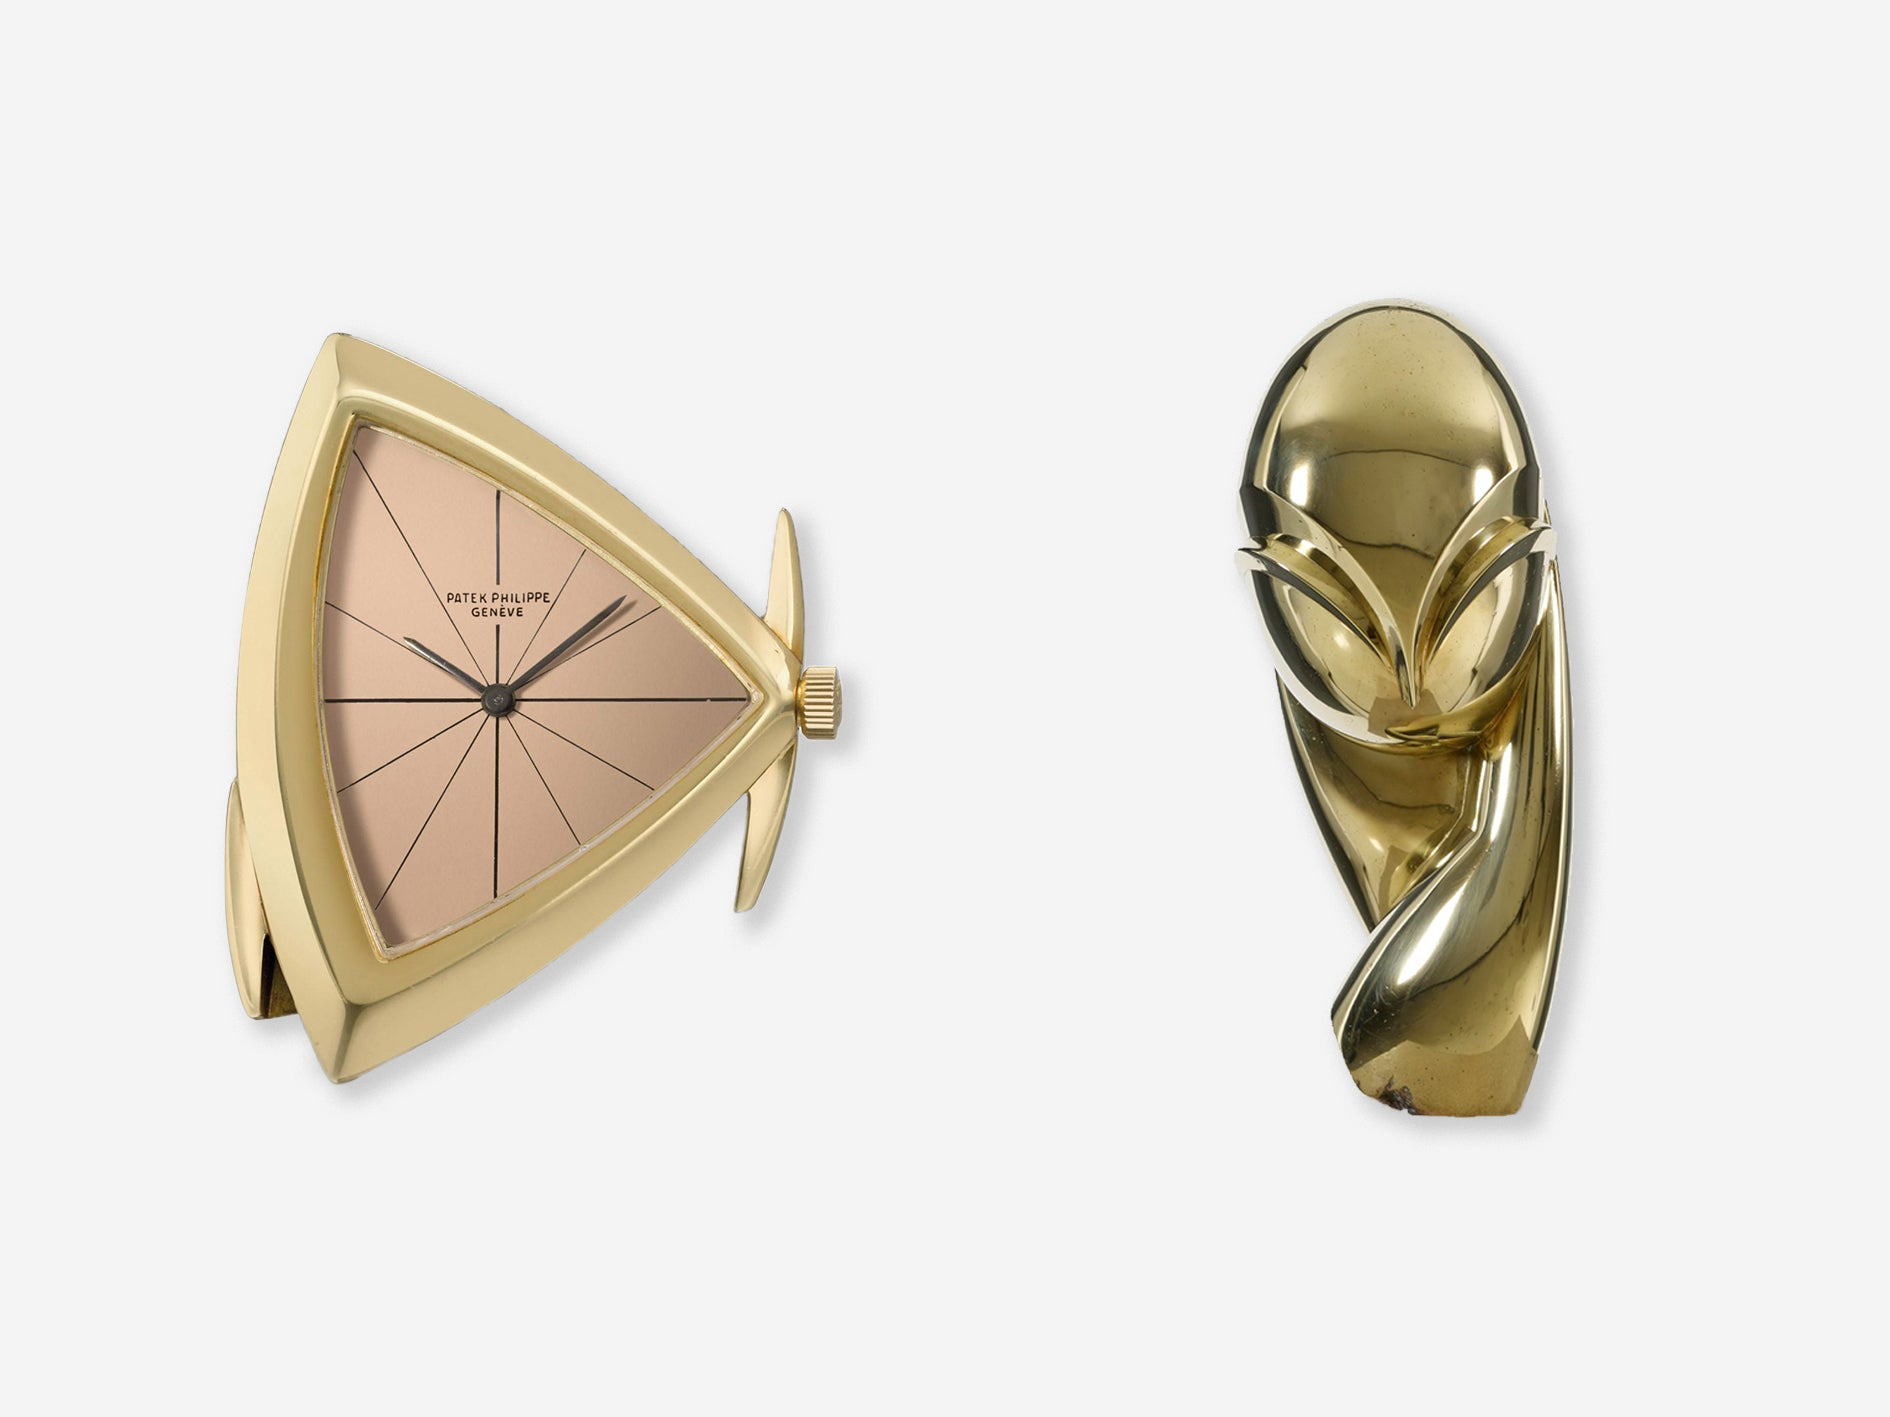 Patek Philippe 3412 and Constantin Brancusi's Madamoiselle Pognay II statue in The Role Played by 'Collaborations' in Watchmaking for A Collected Man London